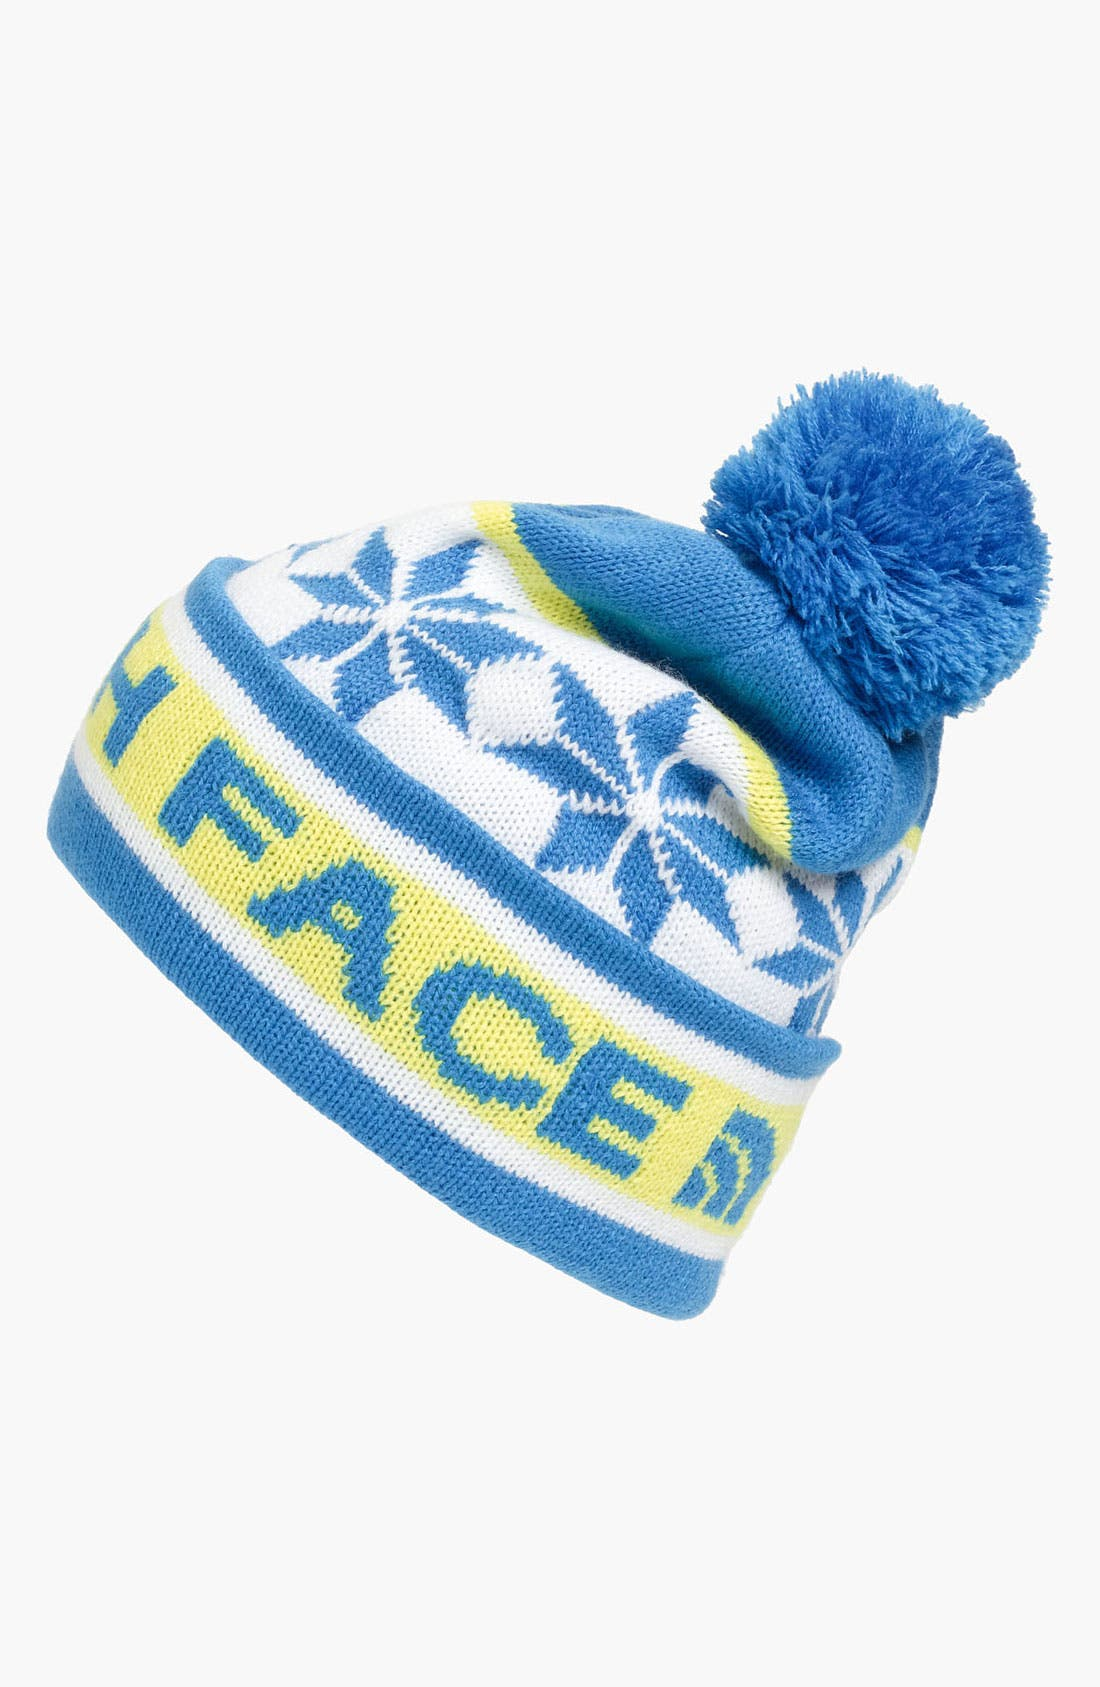 Alternate Image 1 Selected - The North Face 'Ski Tuque III' Beanie